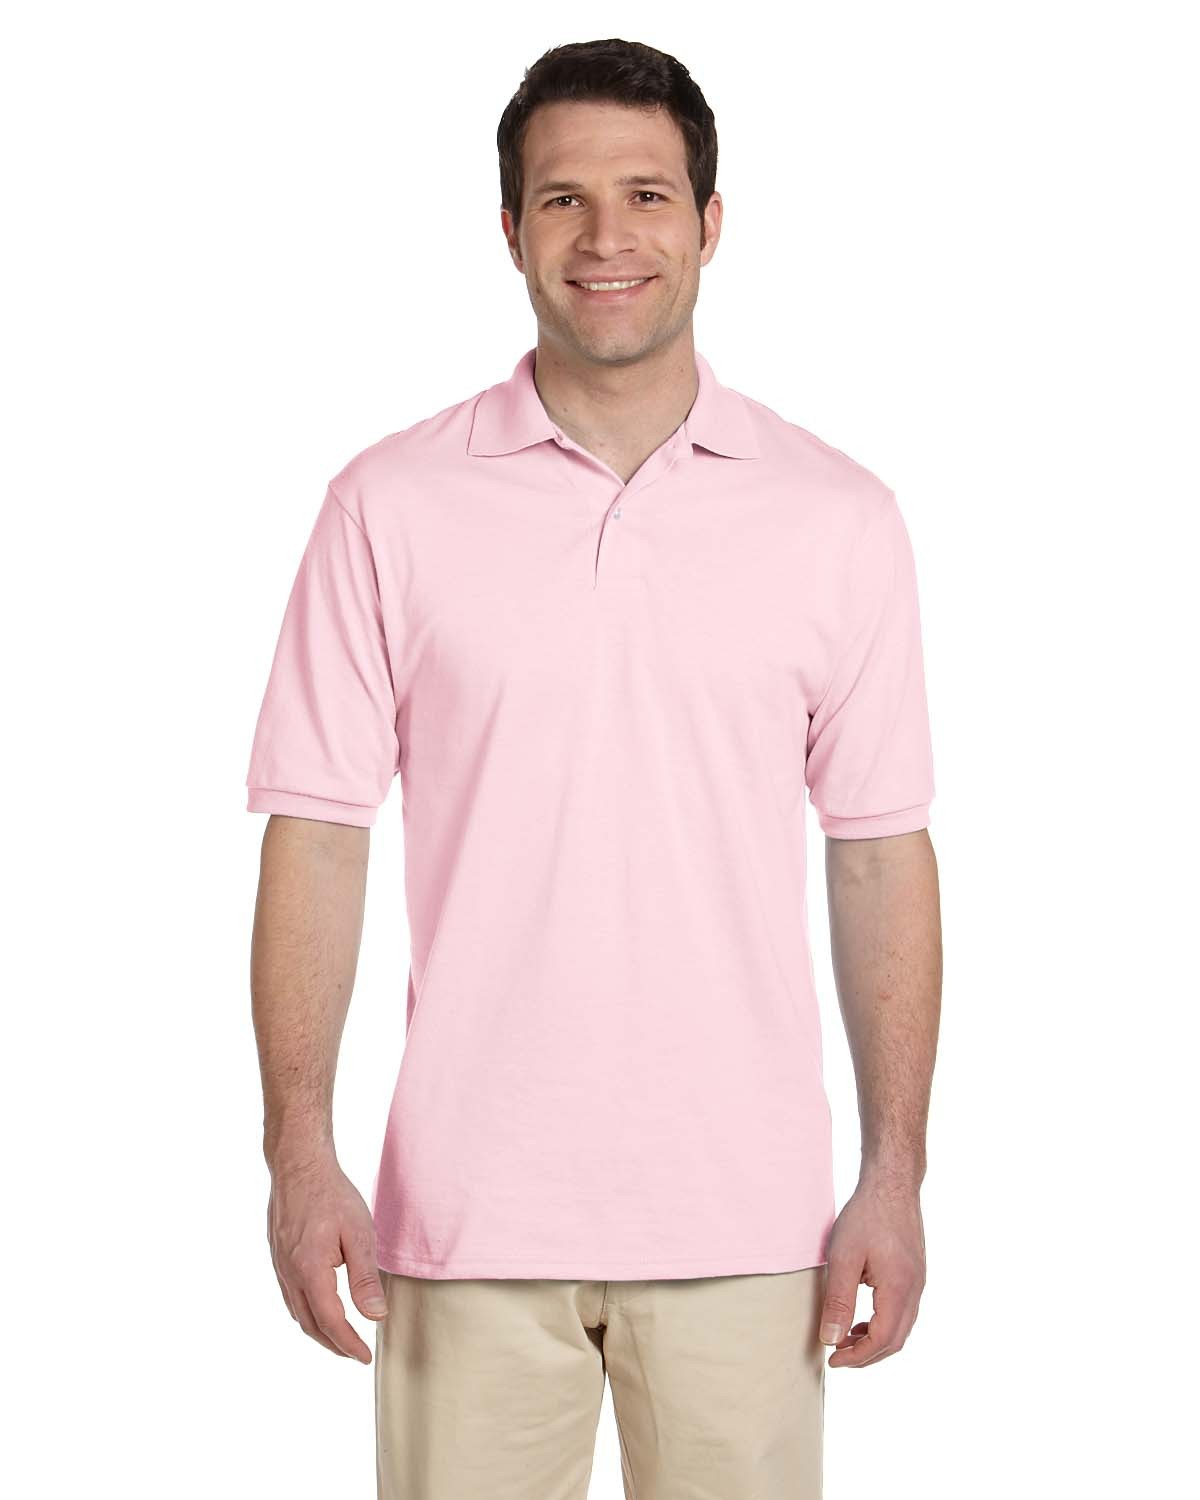 437 Jerzees CLASSIC PINK